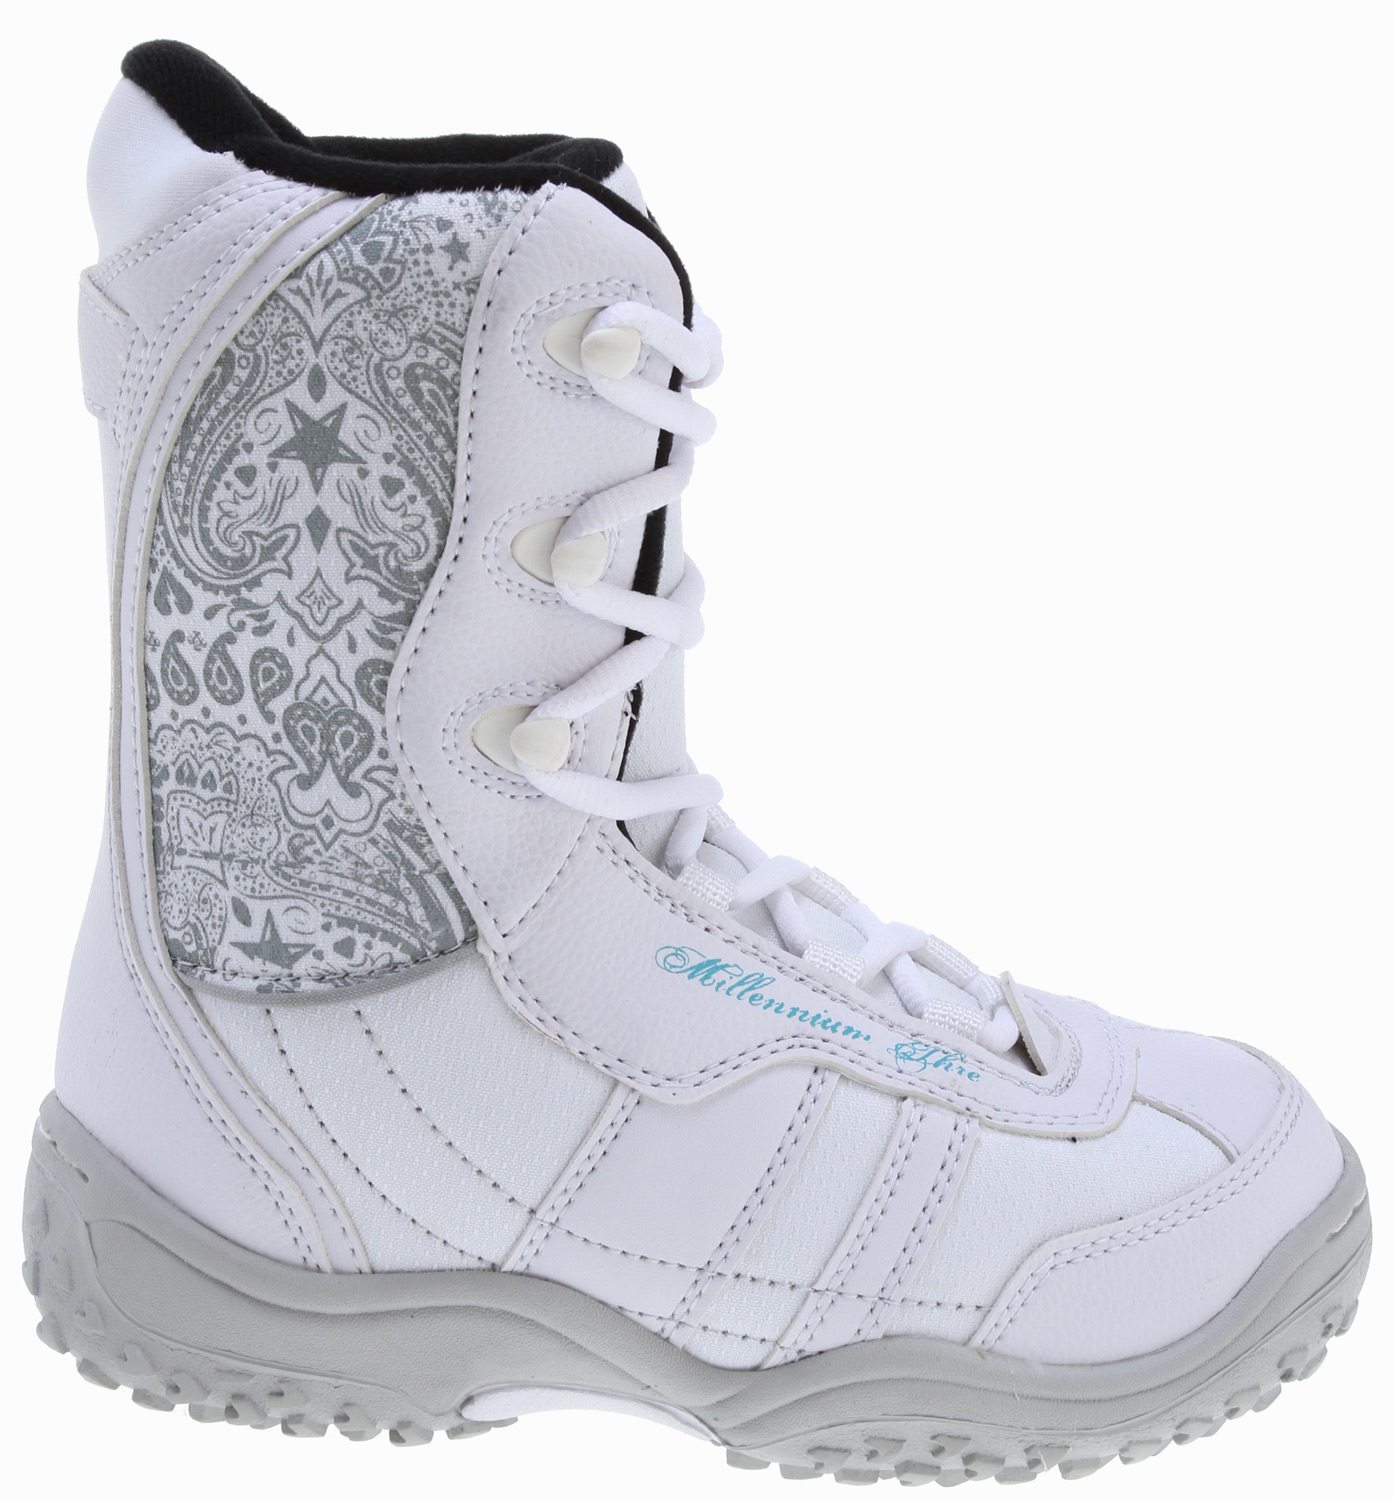 Snowboard These snowboarding boots from M3 offer style, comfort and performance. These white boots have a great stiff fit and padded design.Key Features of the M3 Venus Jr. Snowboard Boots: Integrated liner Speed hook lacing system Full ankle support Cup sole Synthetic and stitched upper Pull strap - $52.57